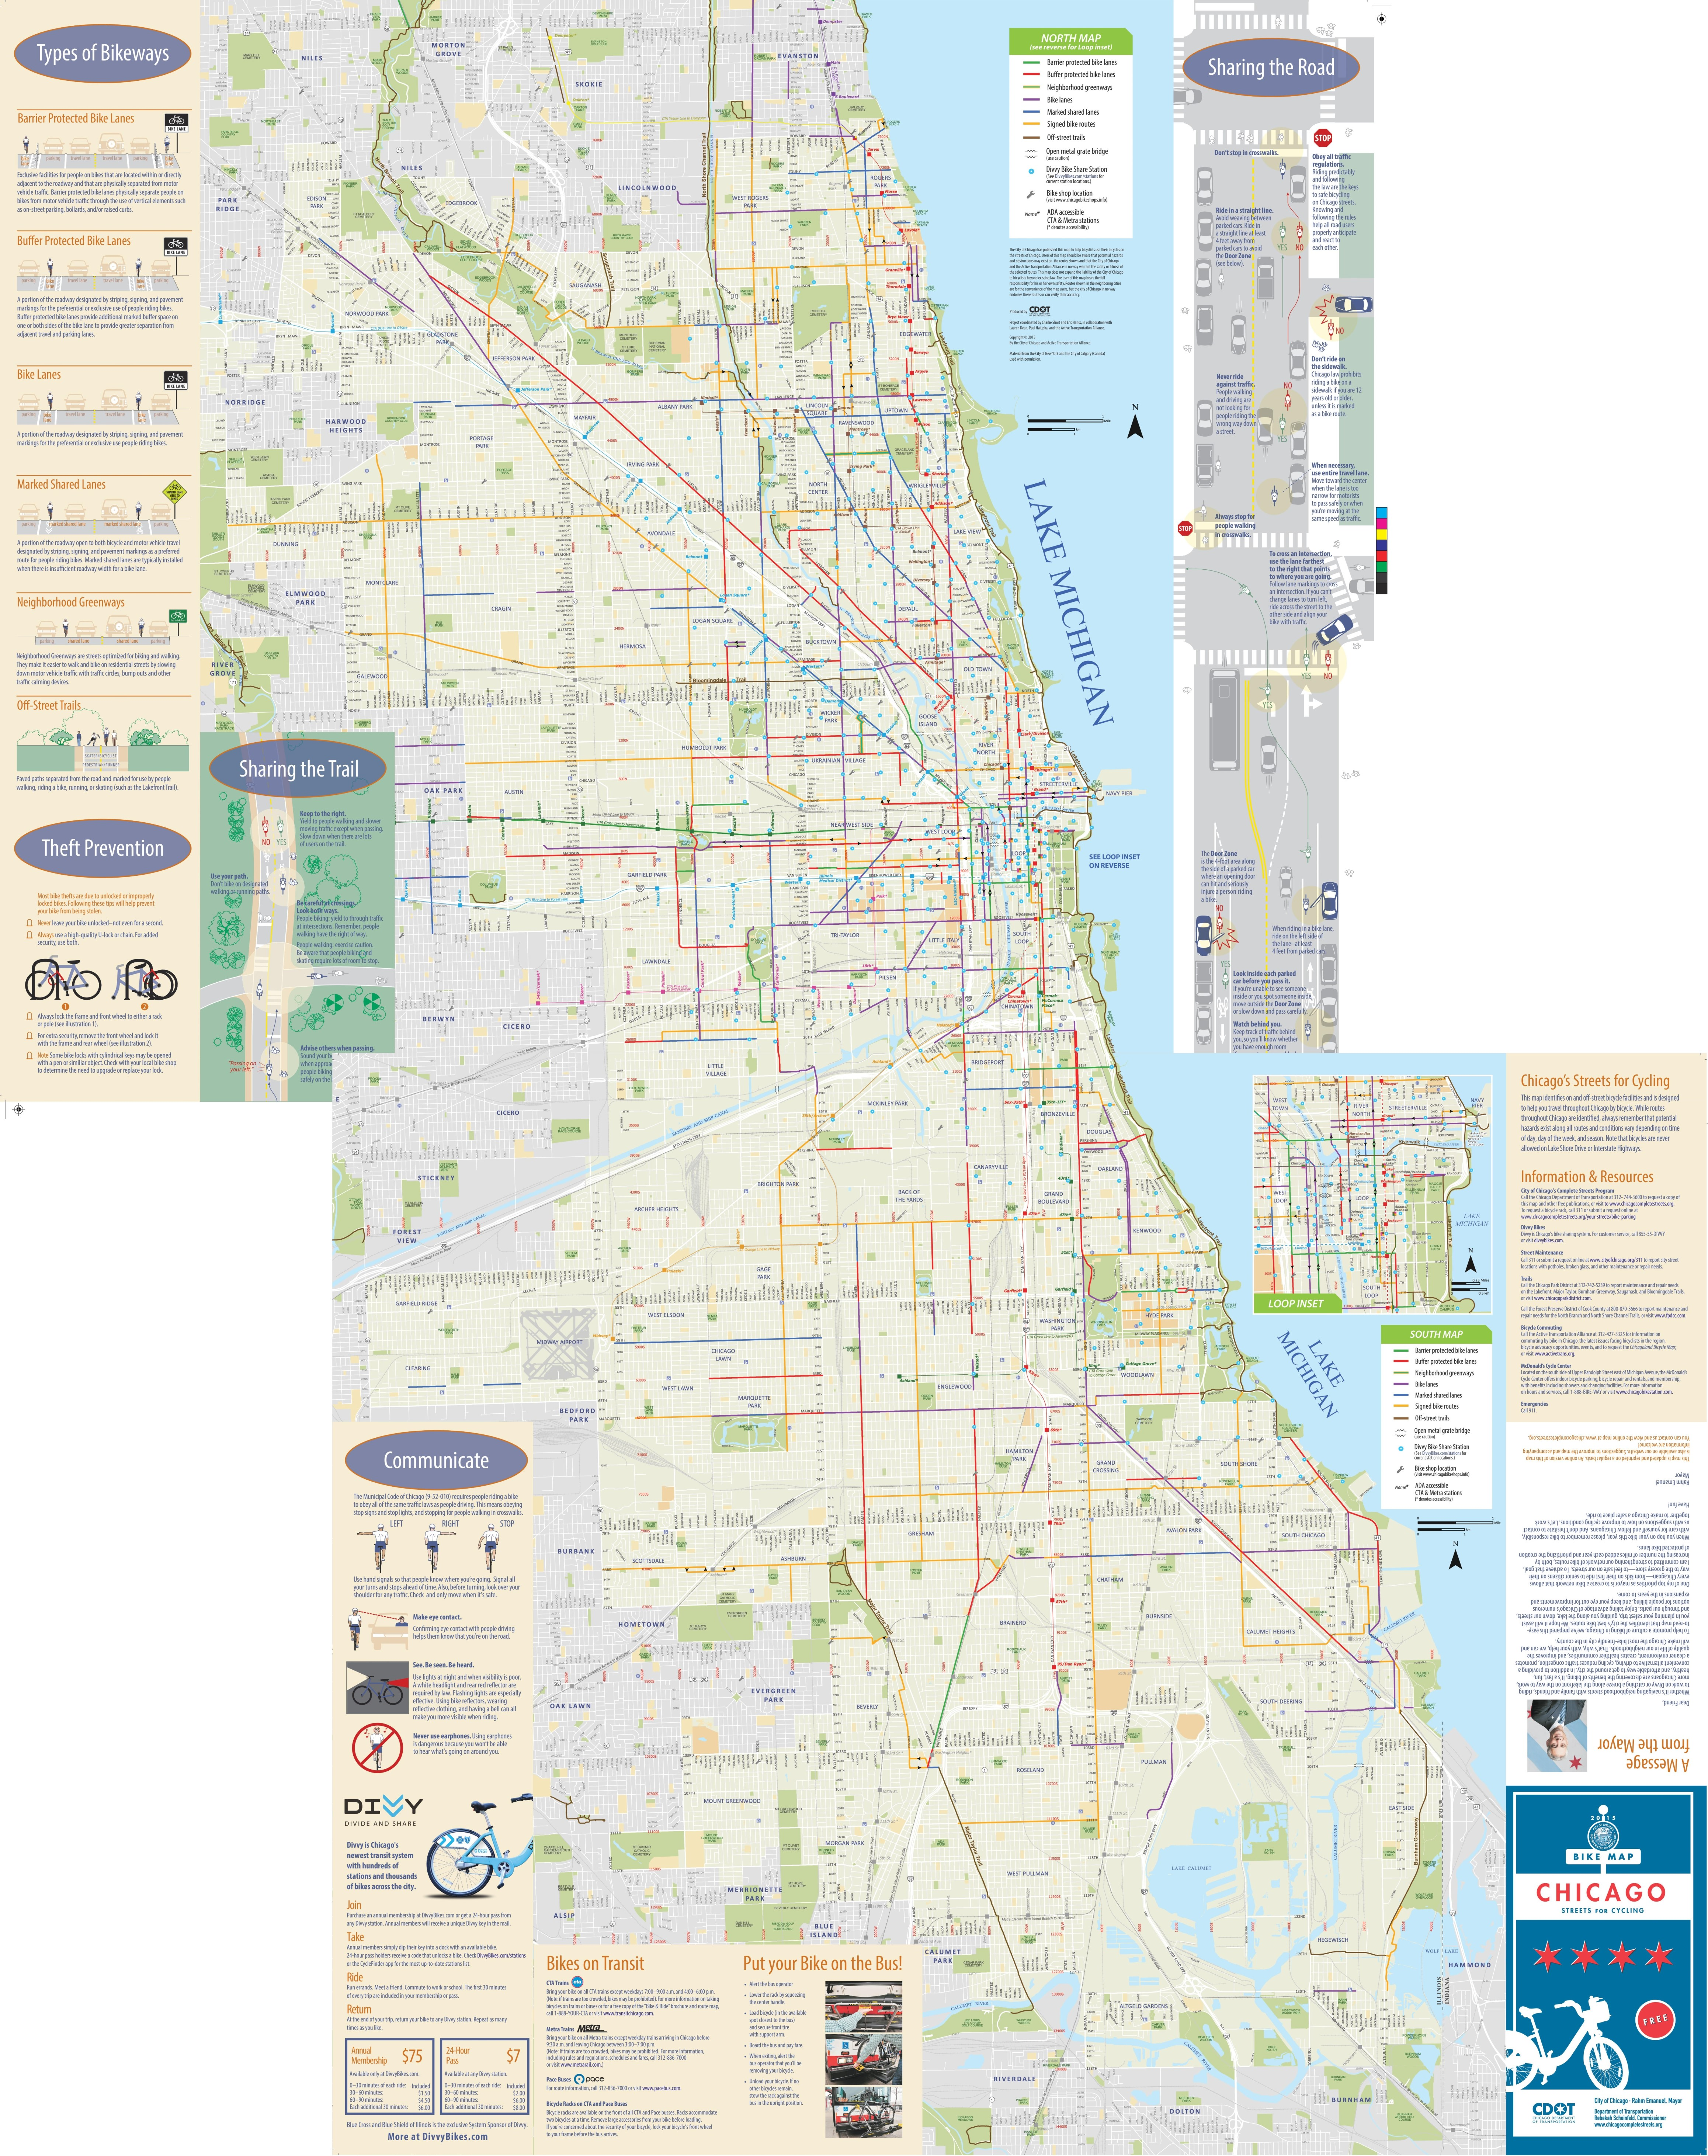 Chicago Bike Map Chicago bike map